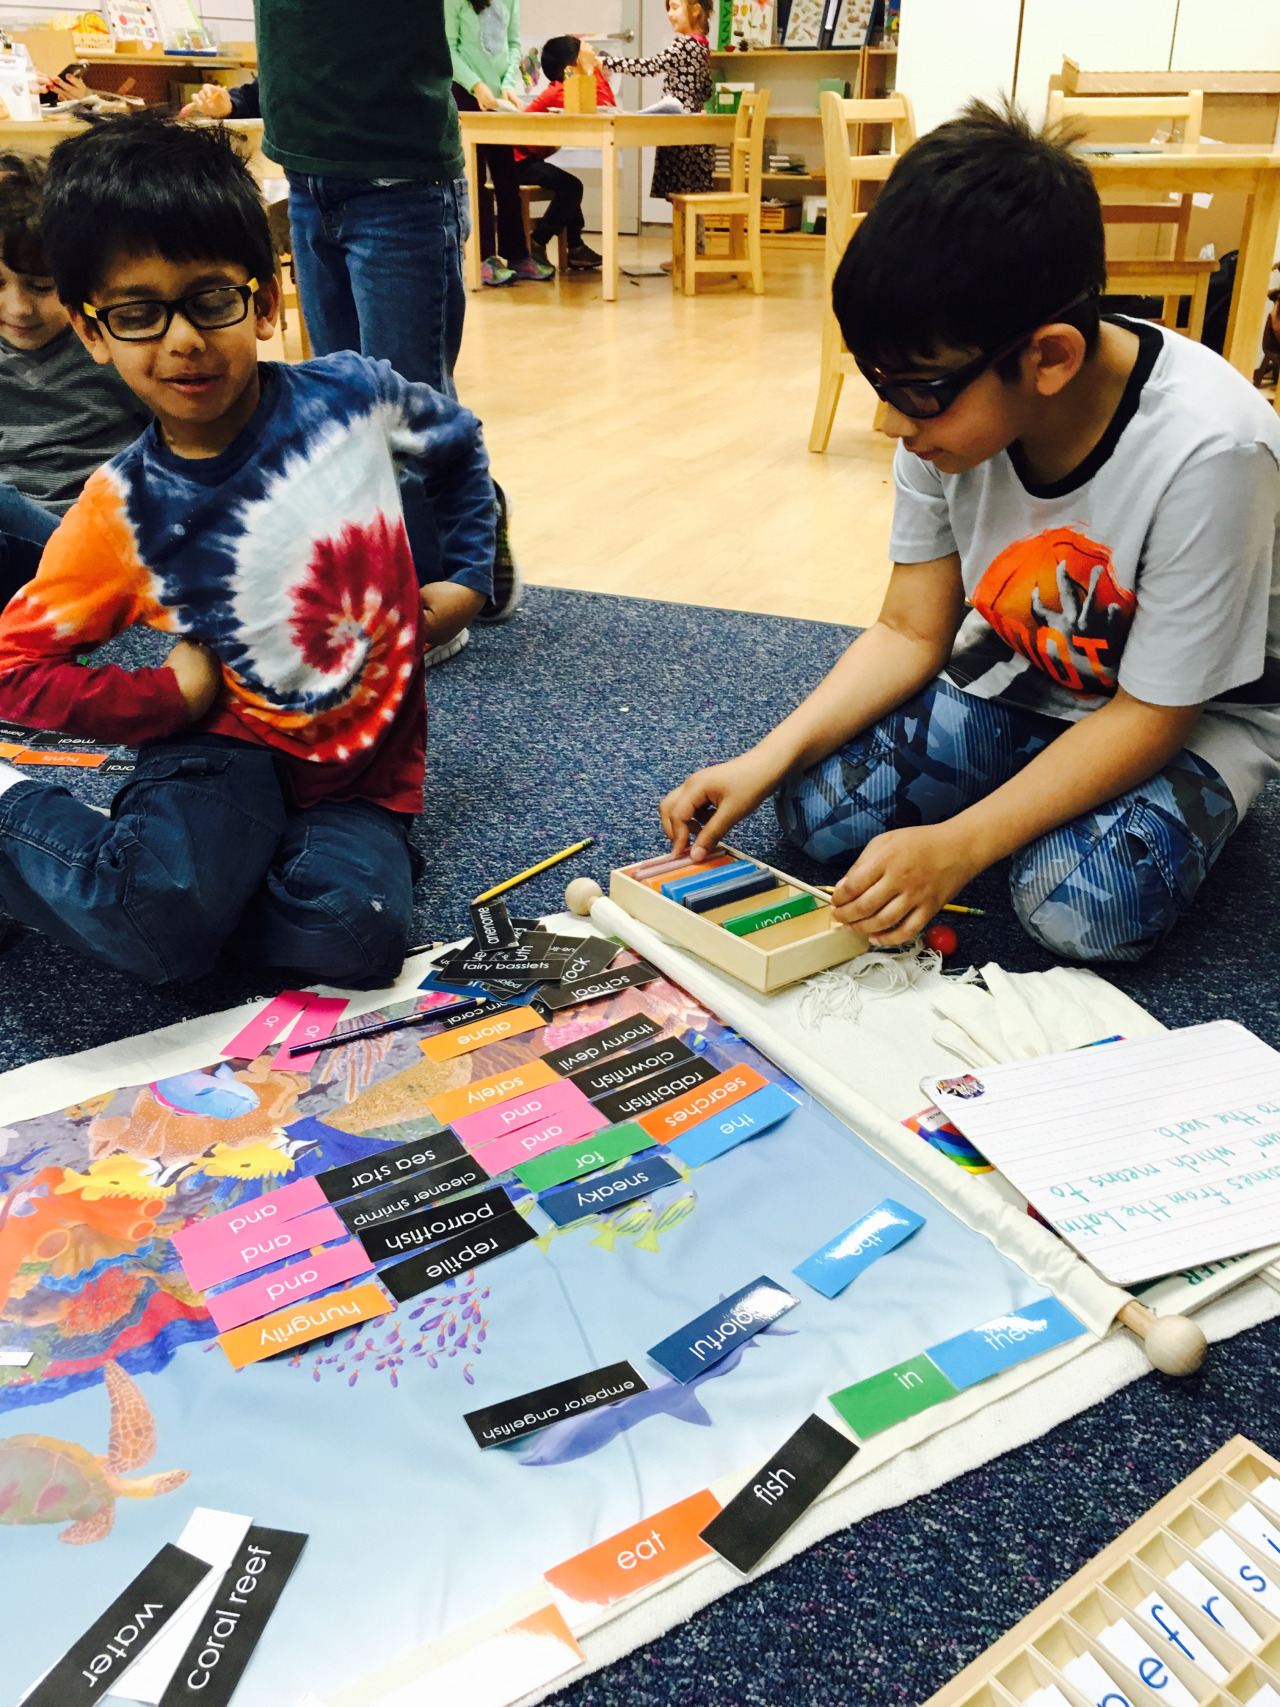 The Biome Mats are one of many examples of the cross curriculum studies in Montessori classrooms.  The Lower Elementary West students use them for grammar, to build sentences and label parts of speech, while they also learn about a particular biome and the animals and plants that live there.